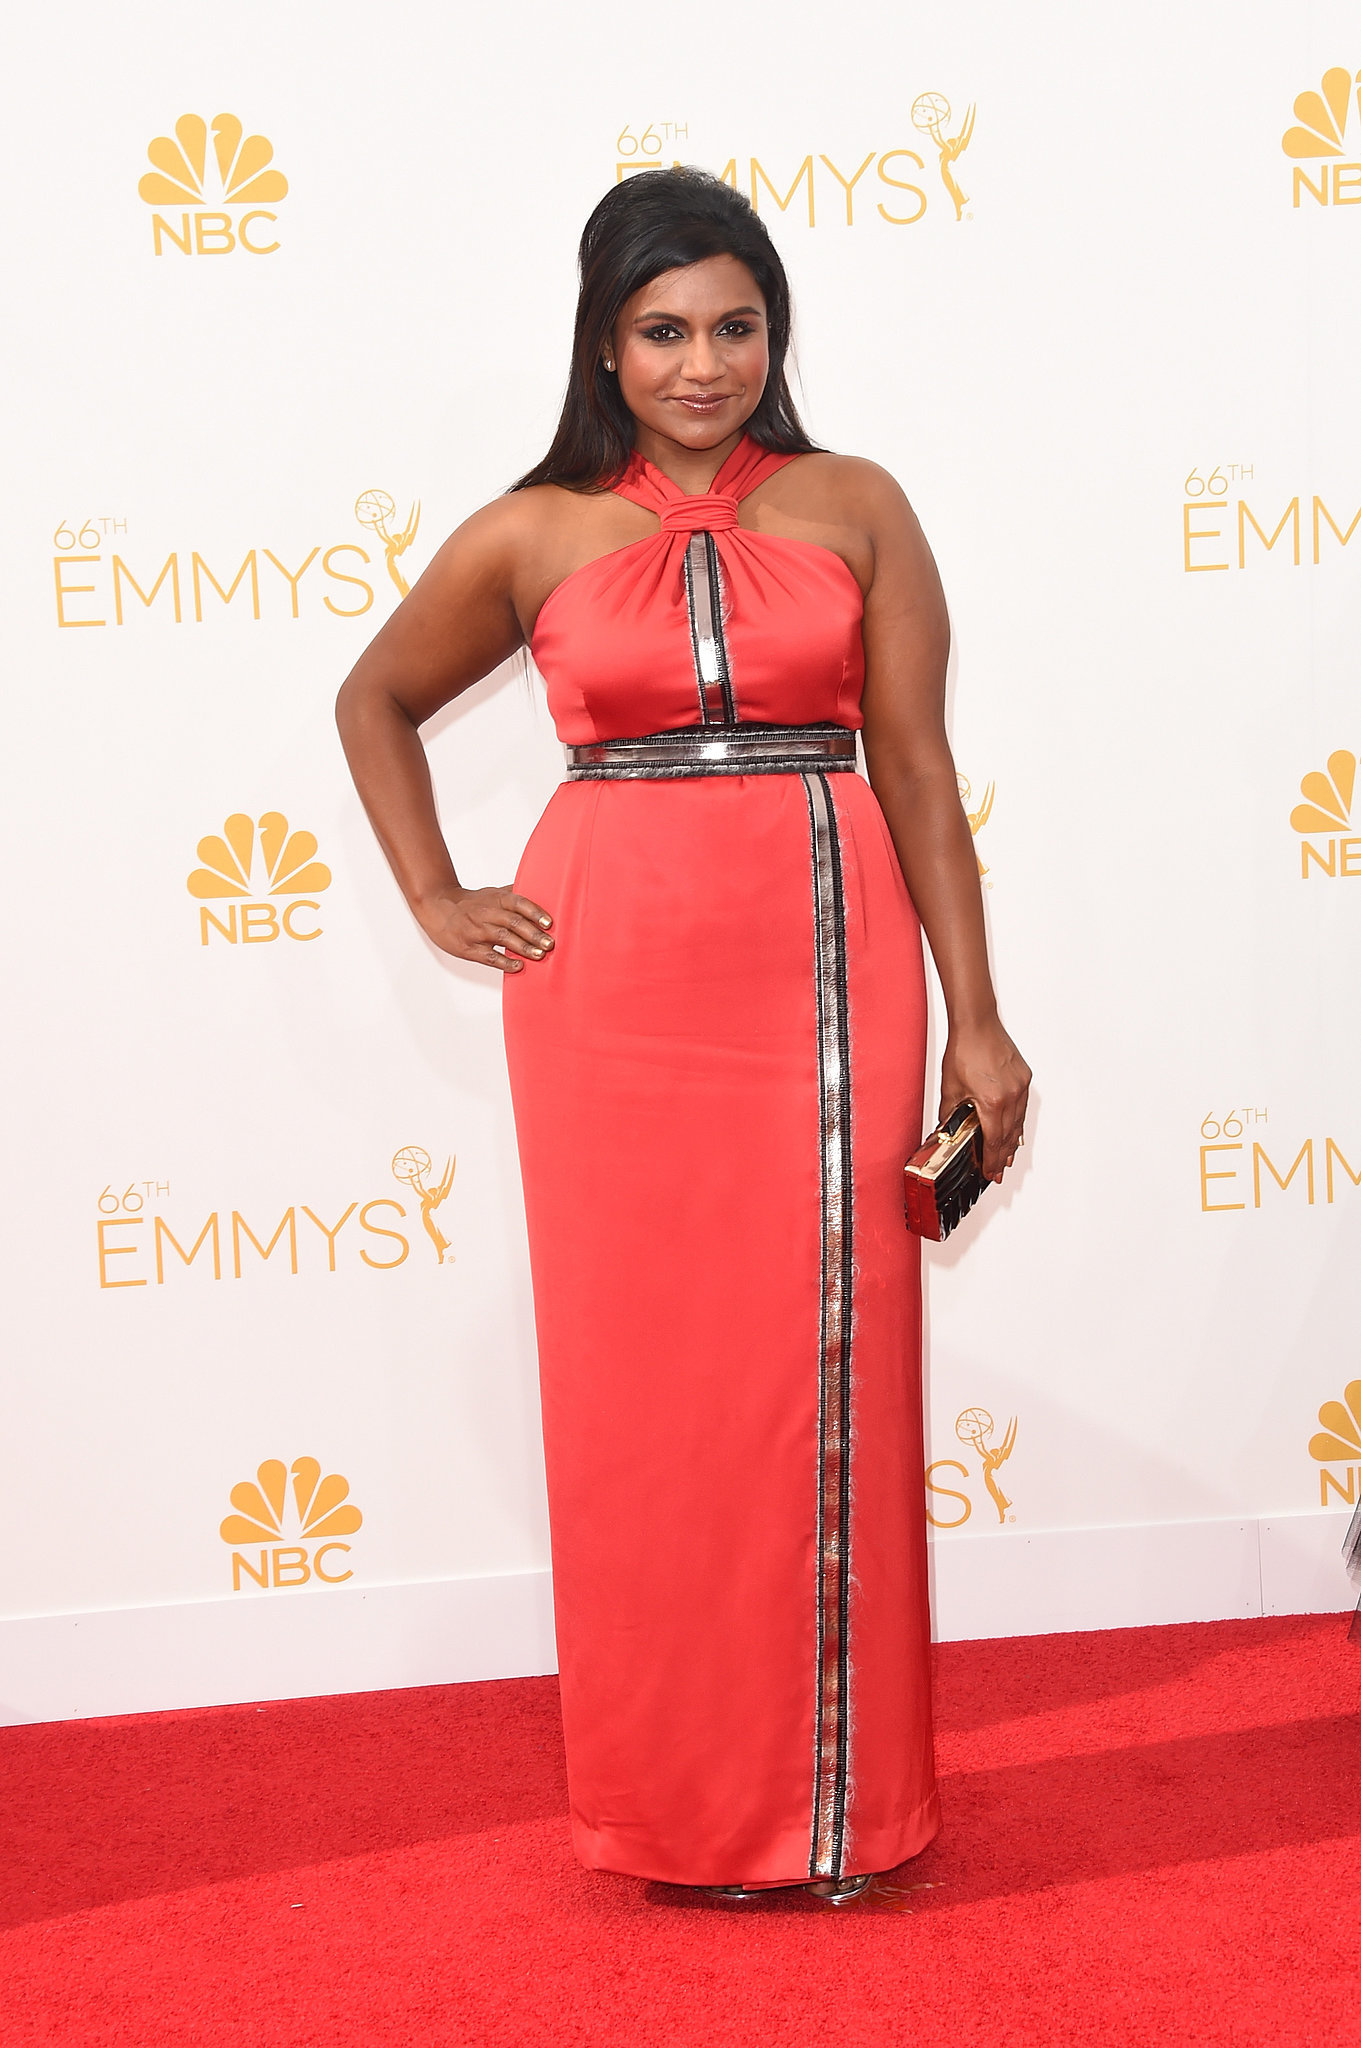 Mindy Kaling In Kenzo Halter tangerine dress with silver detailng at the waist , bustline and at front of the dress